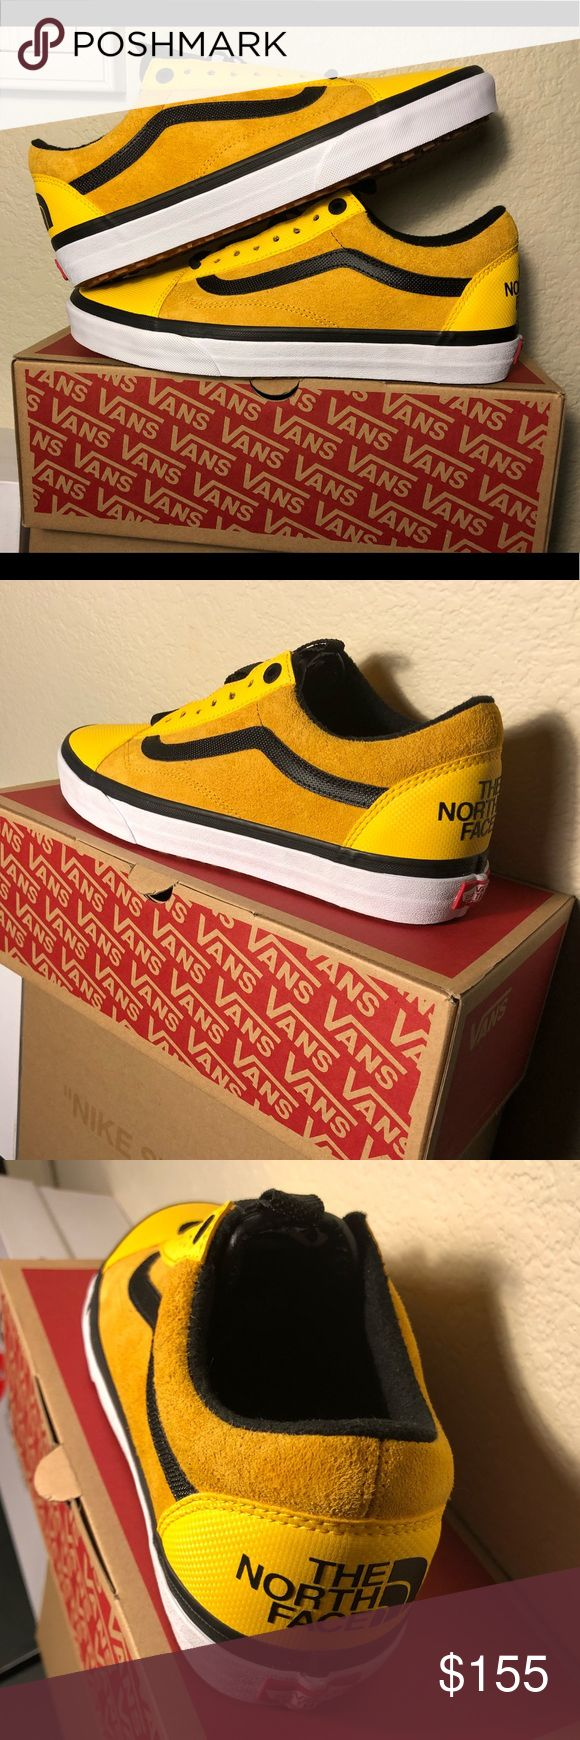 The North Face Vans Old Skools (Yellow) These TNF Vans are deadstock meaning brand new and never worn. I am open to offers and can negotiate on price! Text me if you are interested, not dealing via Poshmark due to fees, 760-310-9799 Vans Shoes Sneakers